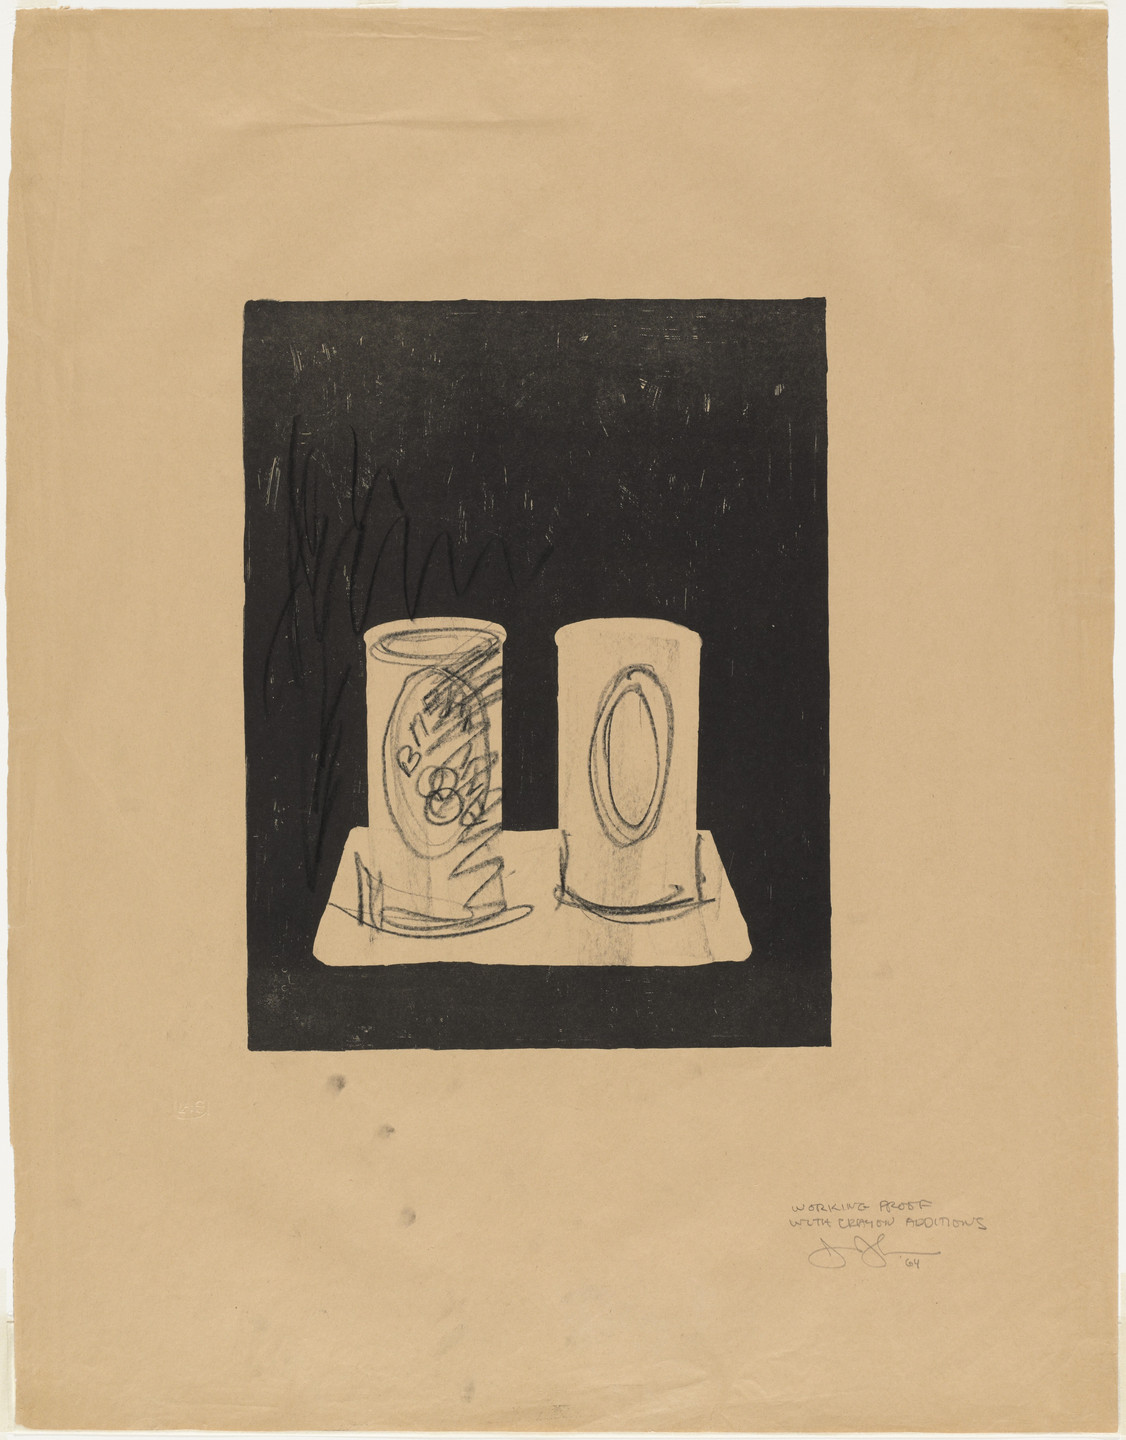 Jasper Johns. Ale Cans. 1964